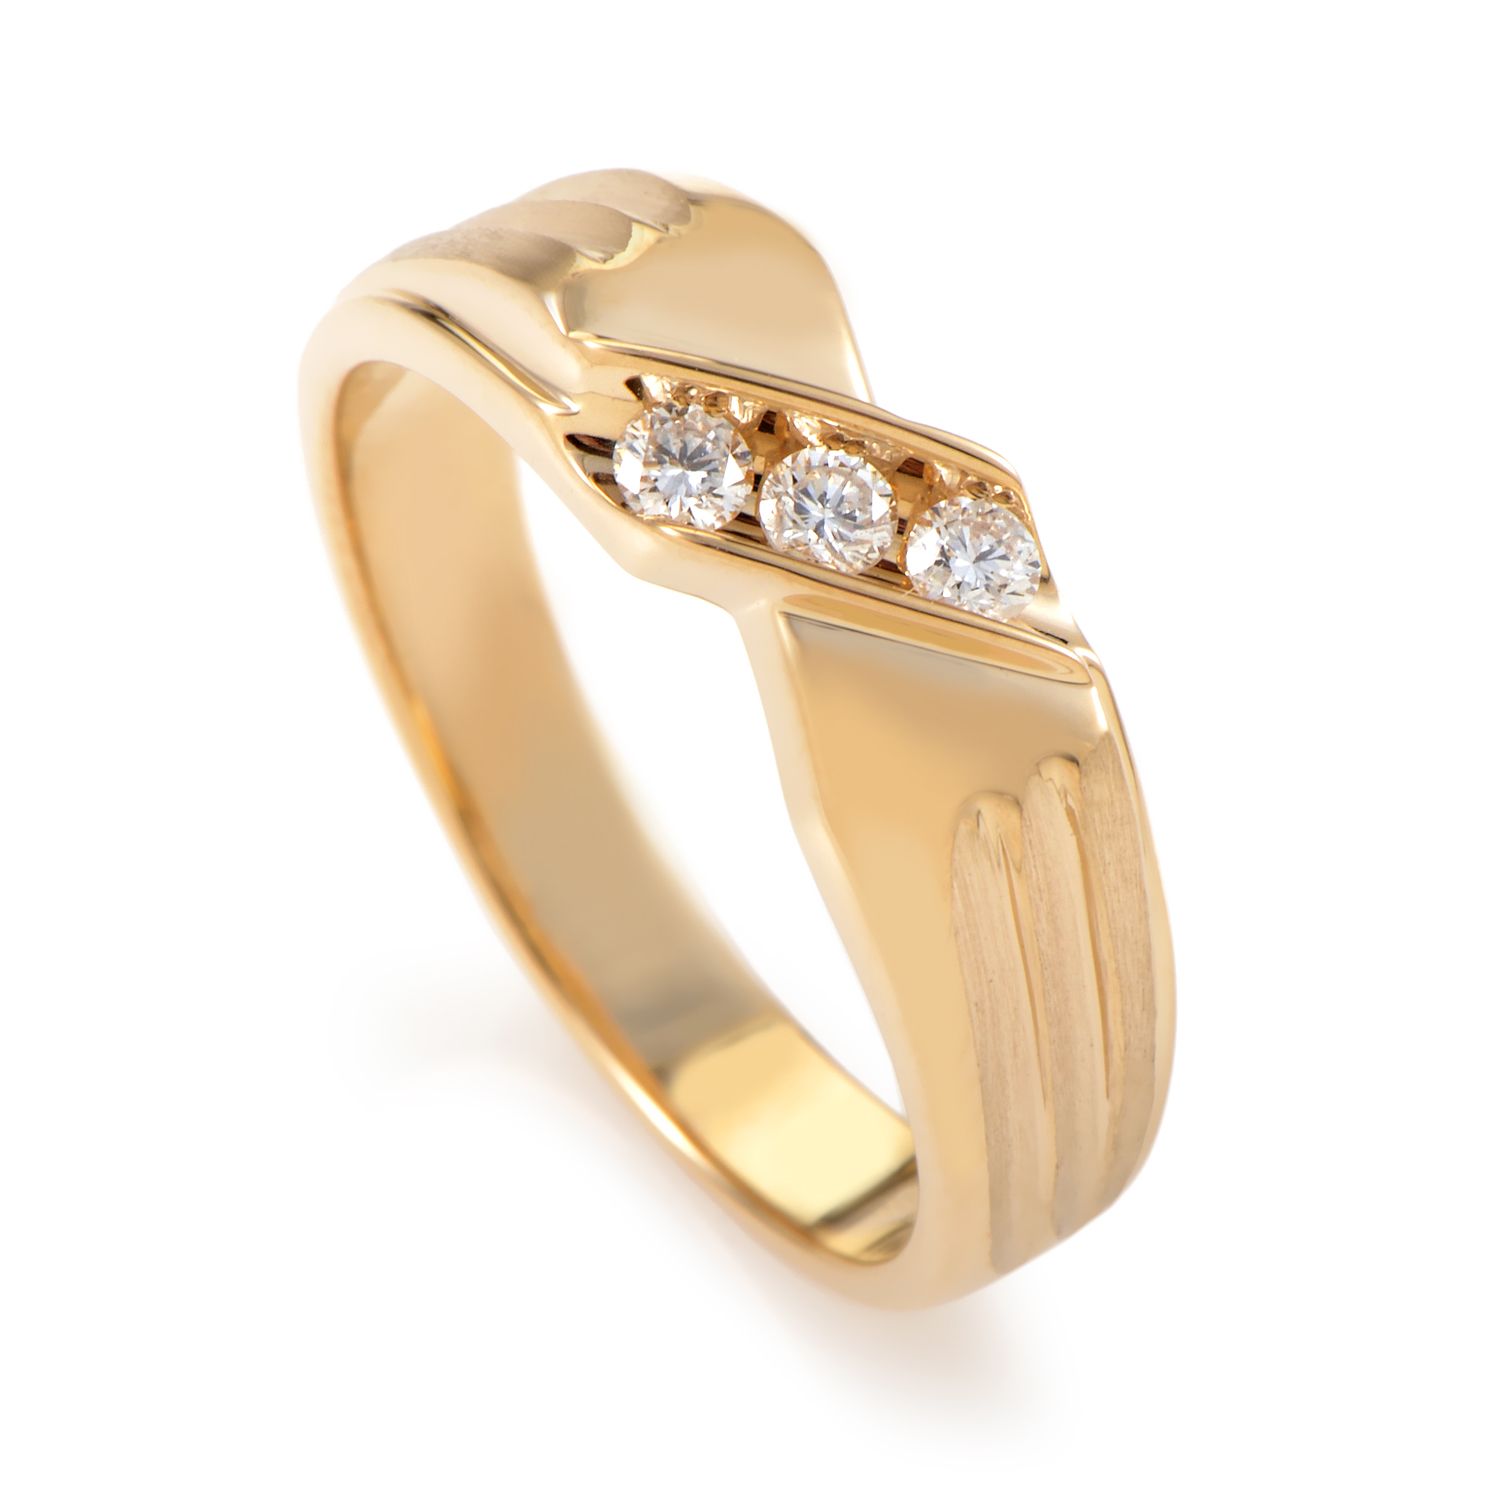 14K Yellow Gold Diamond Band Ring 60613AGW4X